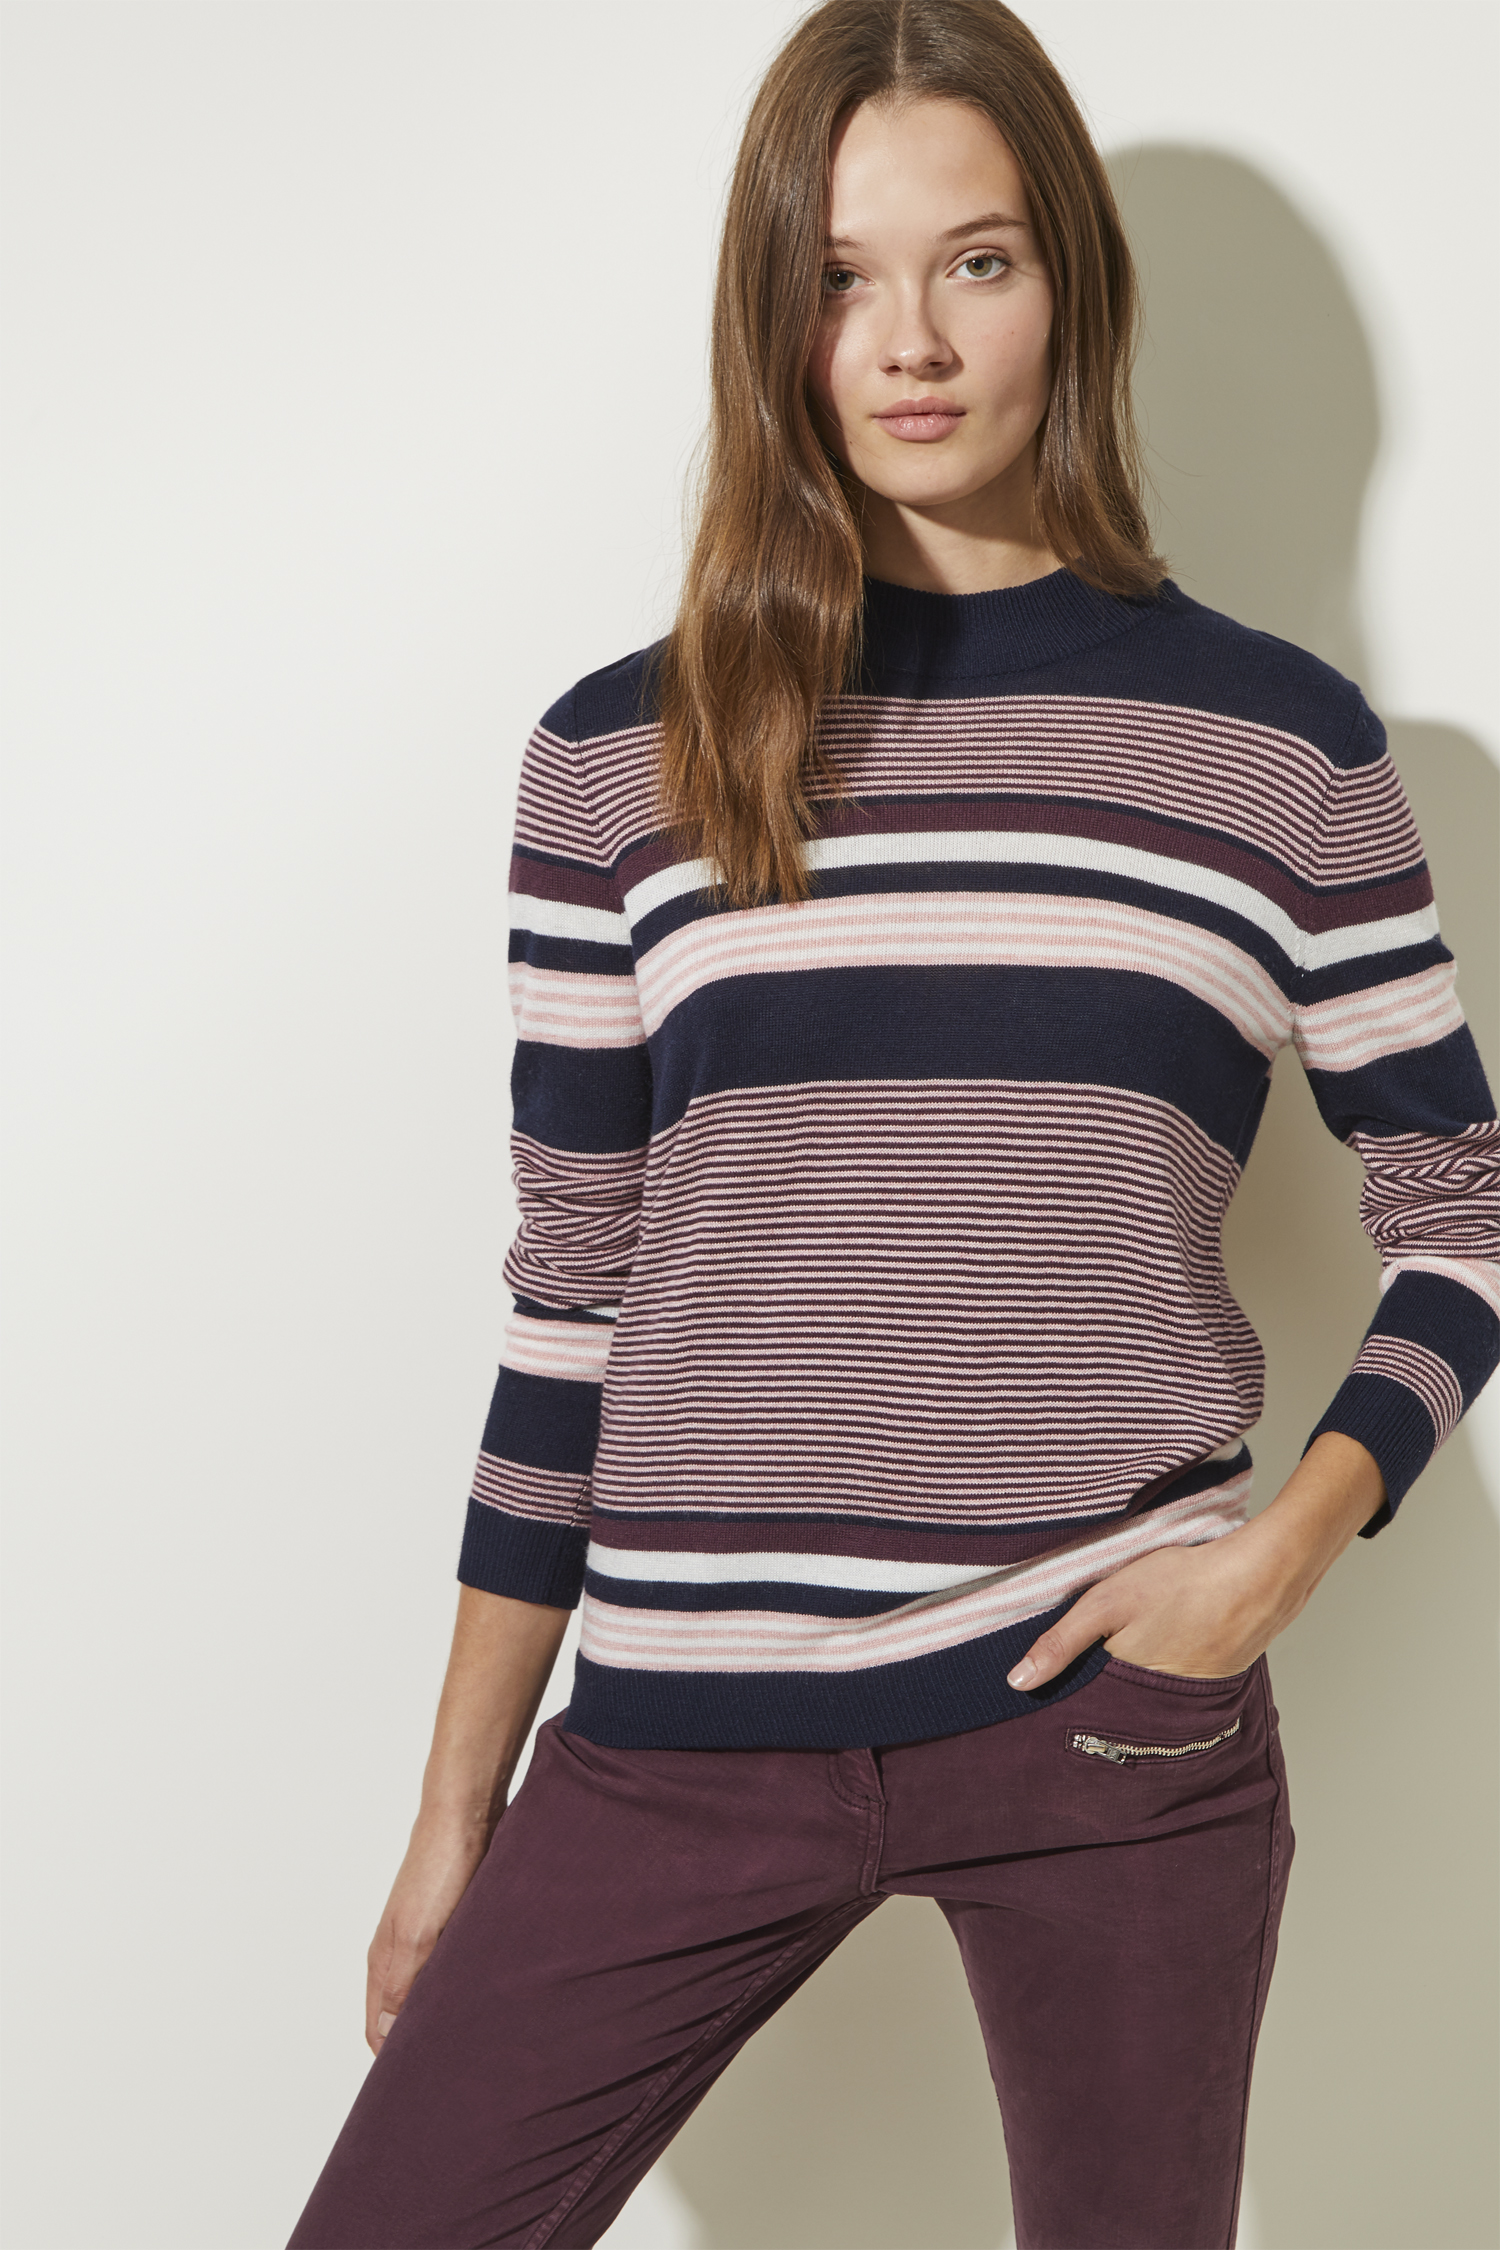 women's striped jumpers